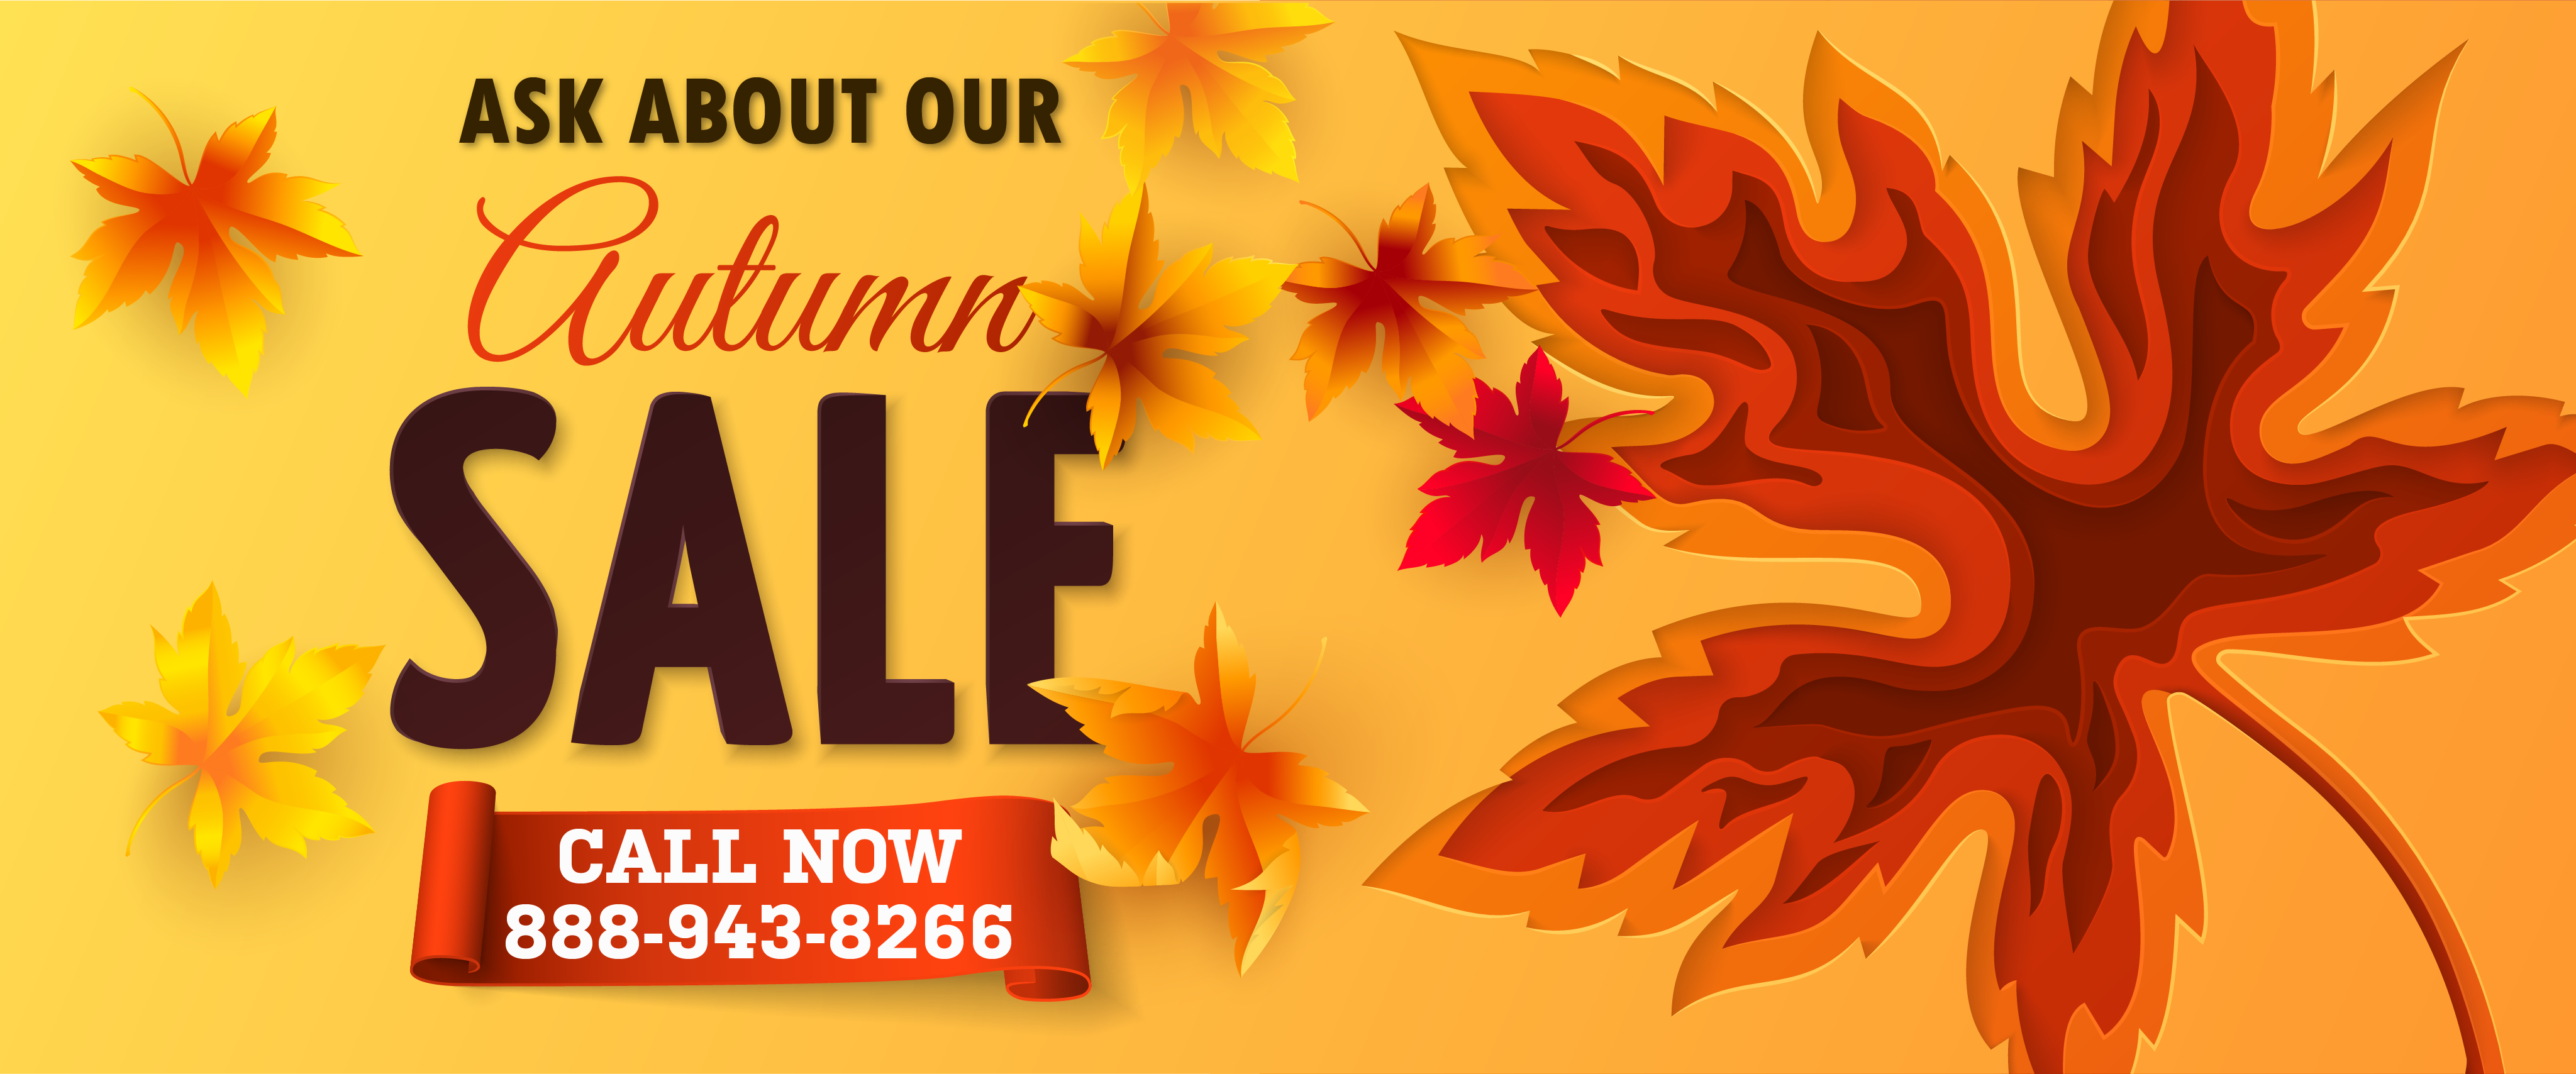 Fall Special - Autumn Sale on Portable Storage